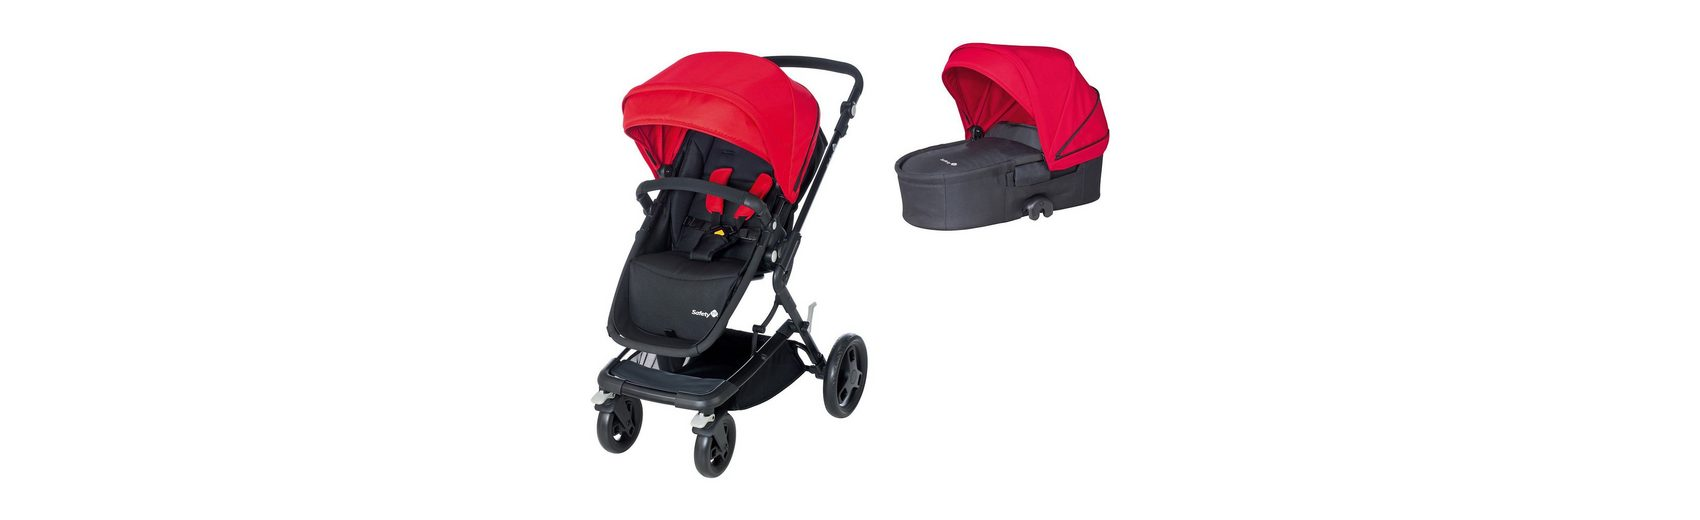 Safety 1st Kombi Kinderwagen Kokoon Comfort Set, Plain Red, 2015